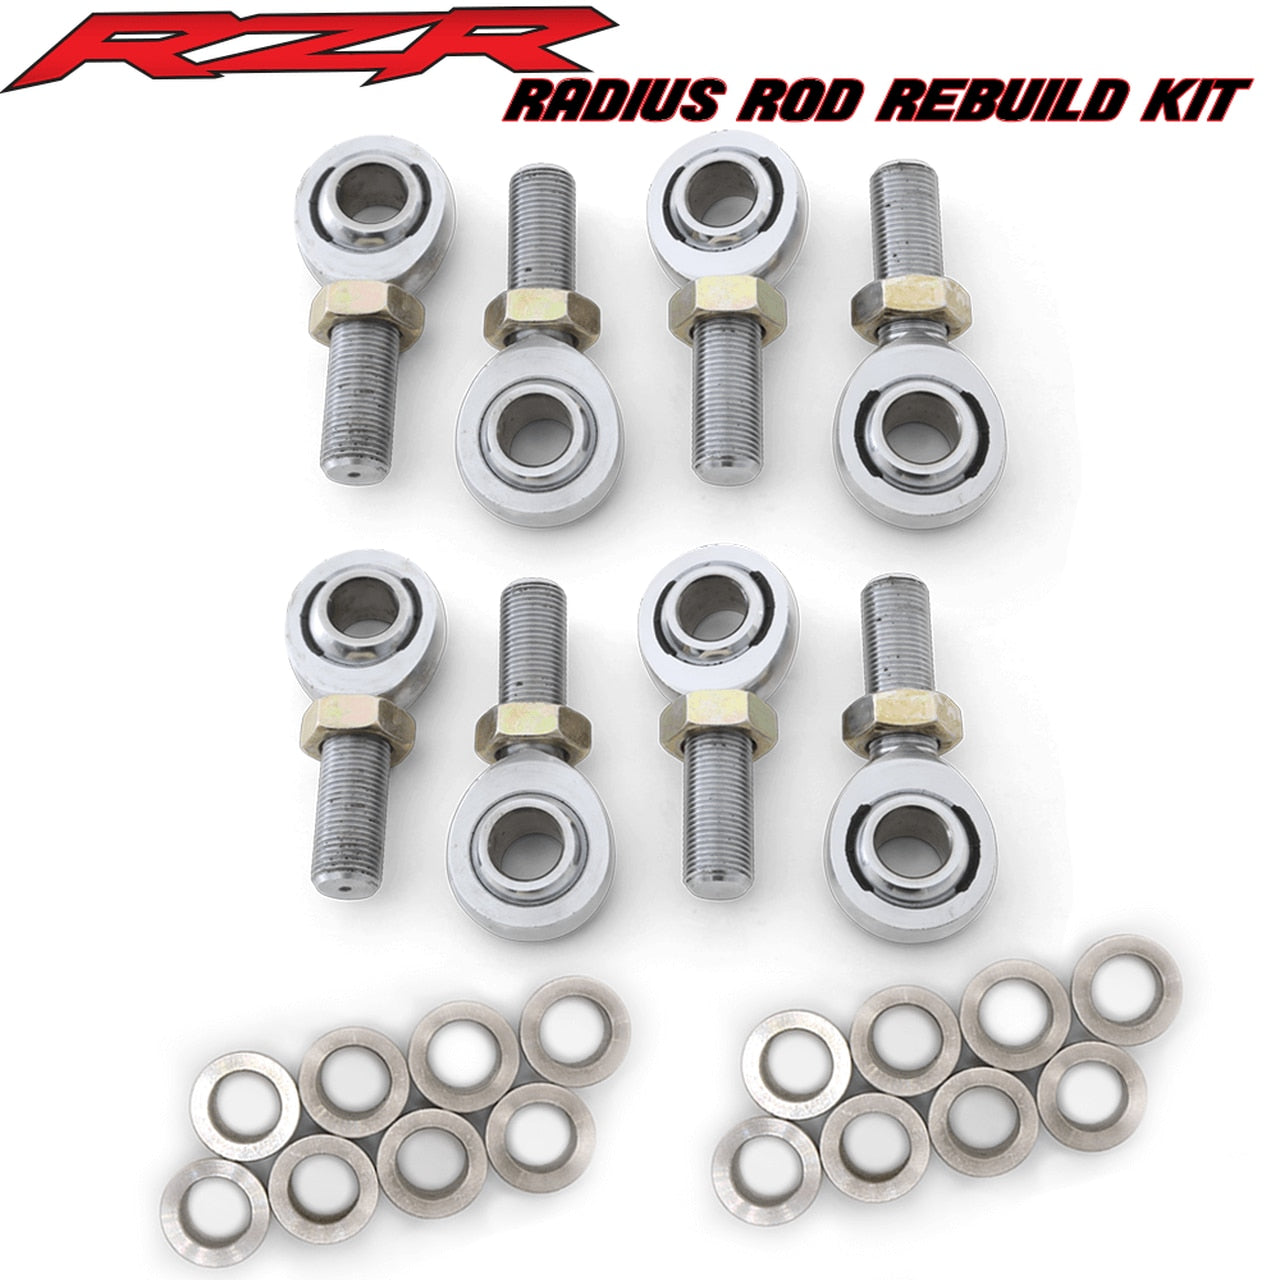 Polaris RZR Radius Rod rebuild kit